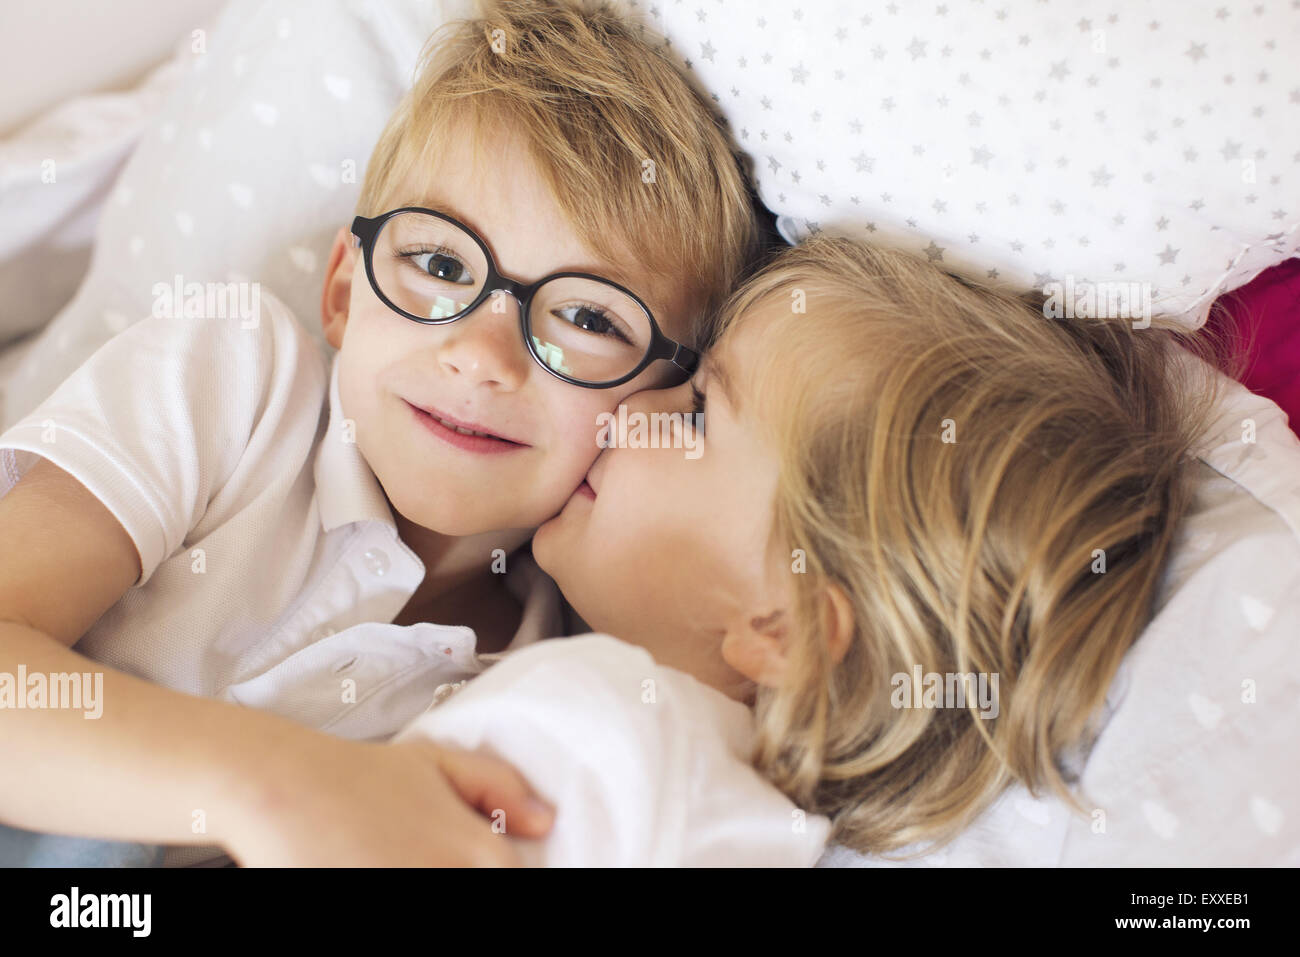 Little girl kissing big brother - Stock Image